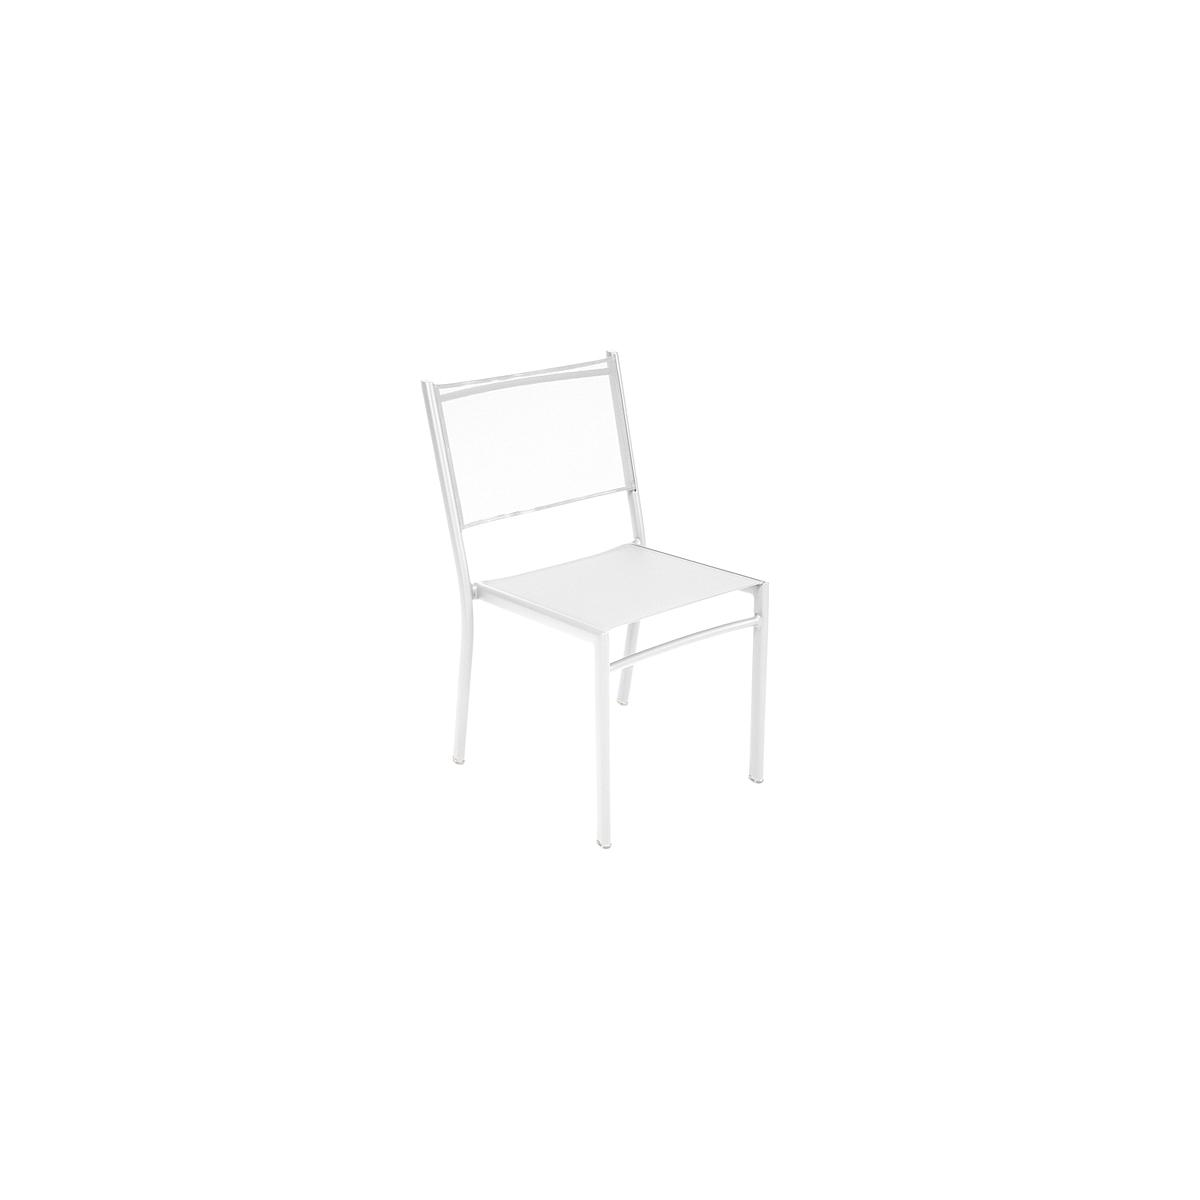 COSTA by Fermob Chaise Blanc coton